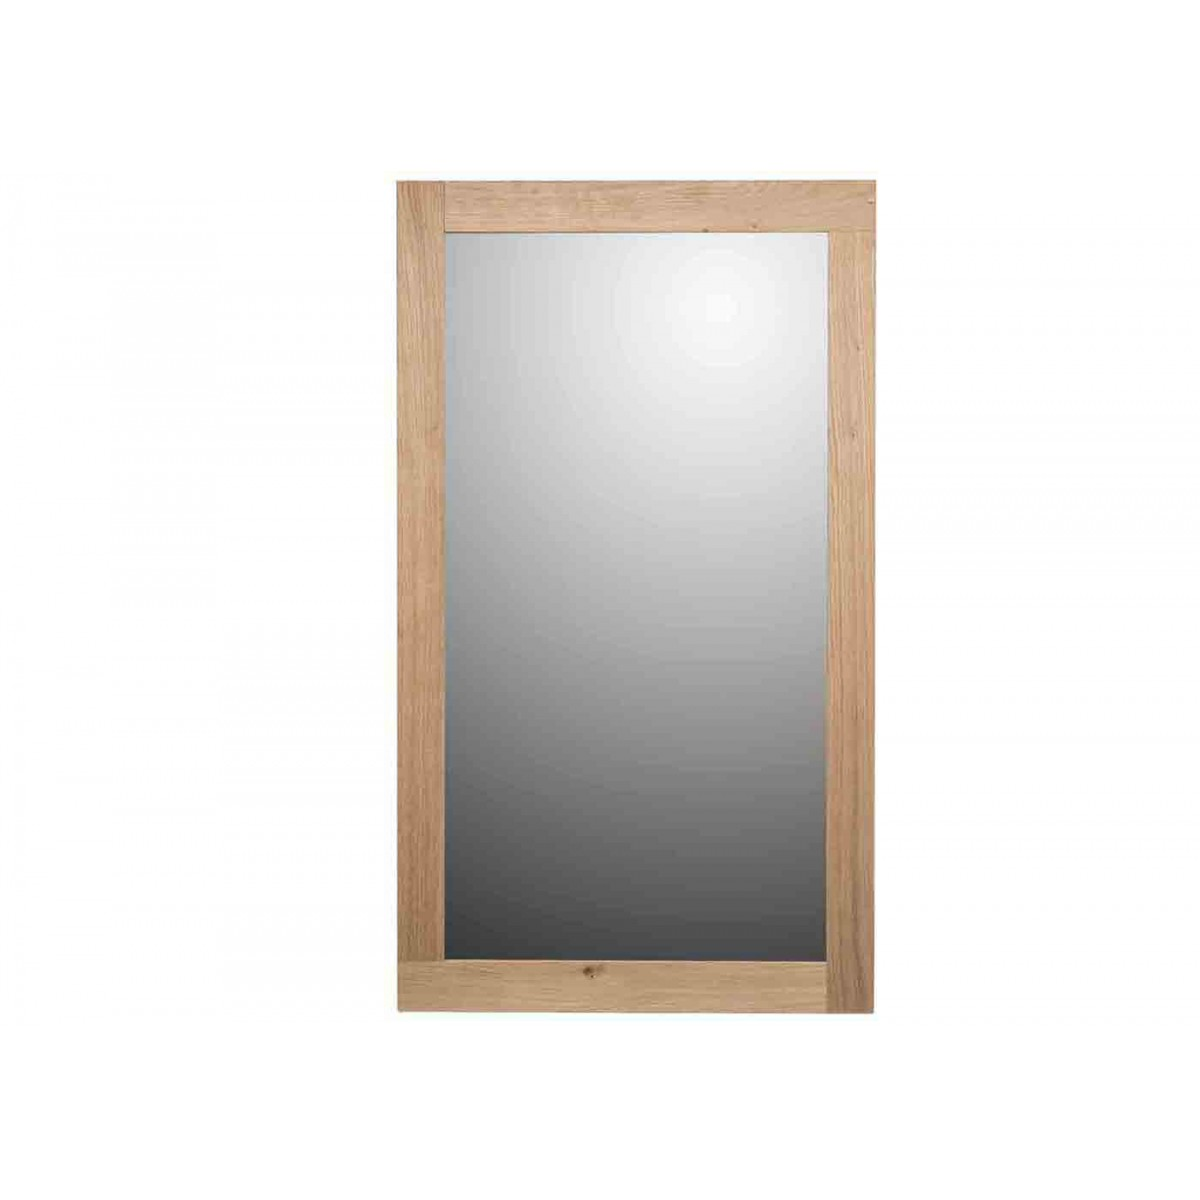 Miroir en ch ne naturel brut par angel des montagnes for Grand miroir bois brut